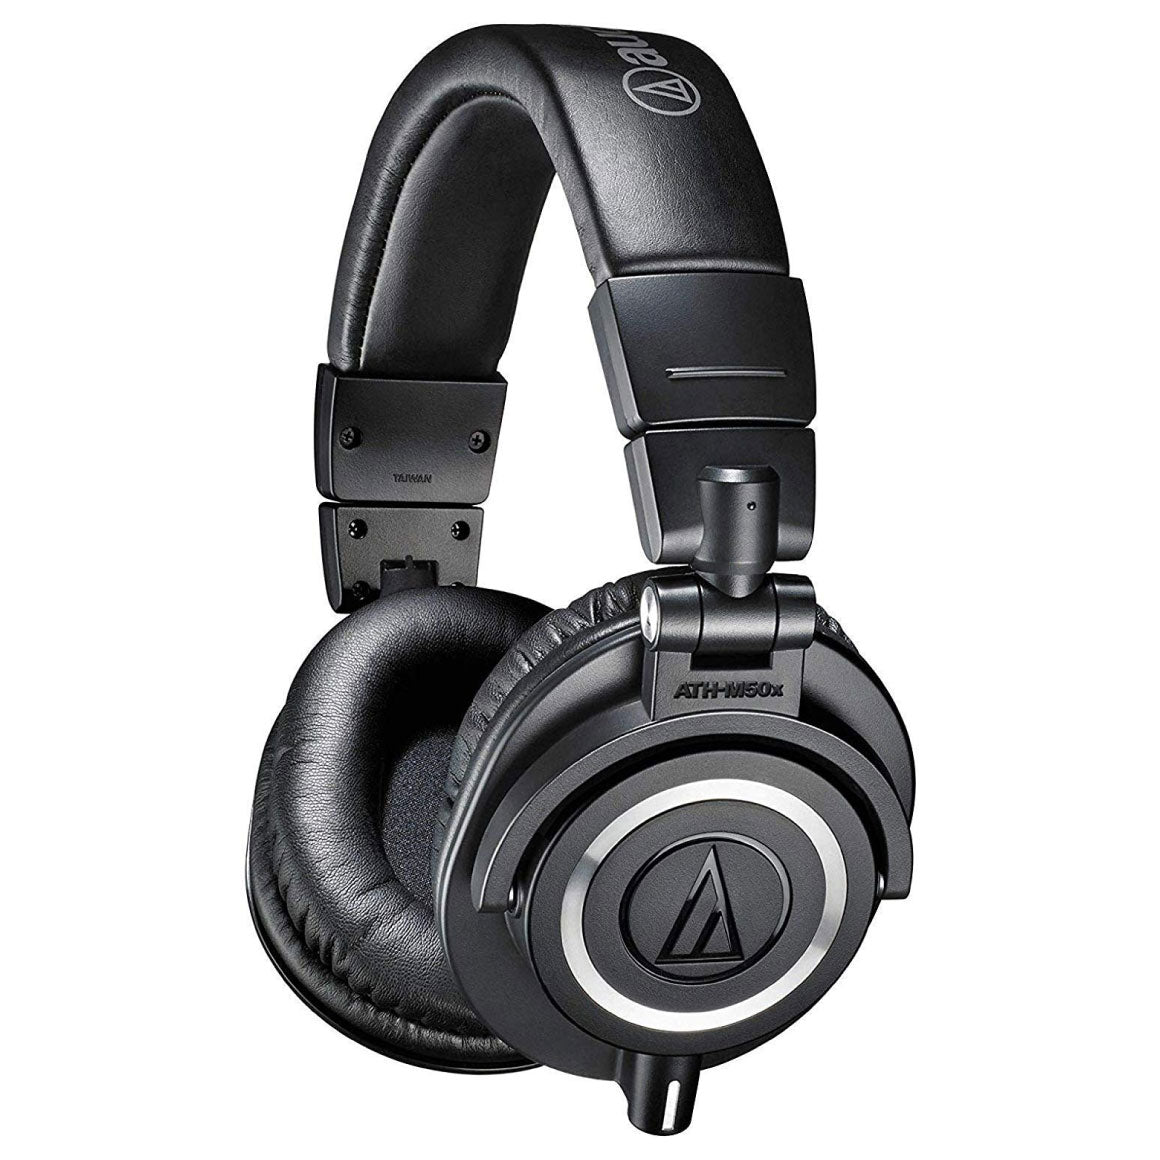 Audio-Technica - ATH-M50xvs competitors